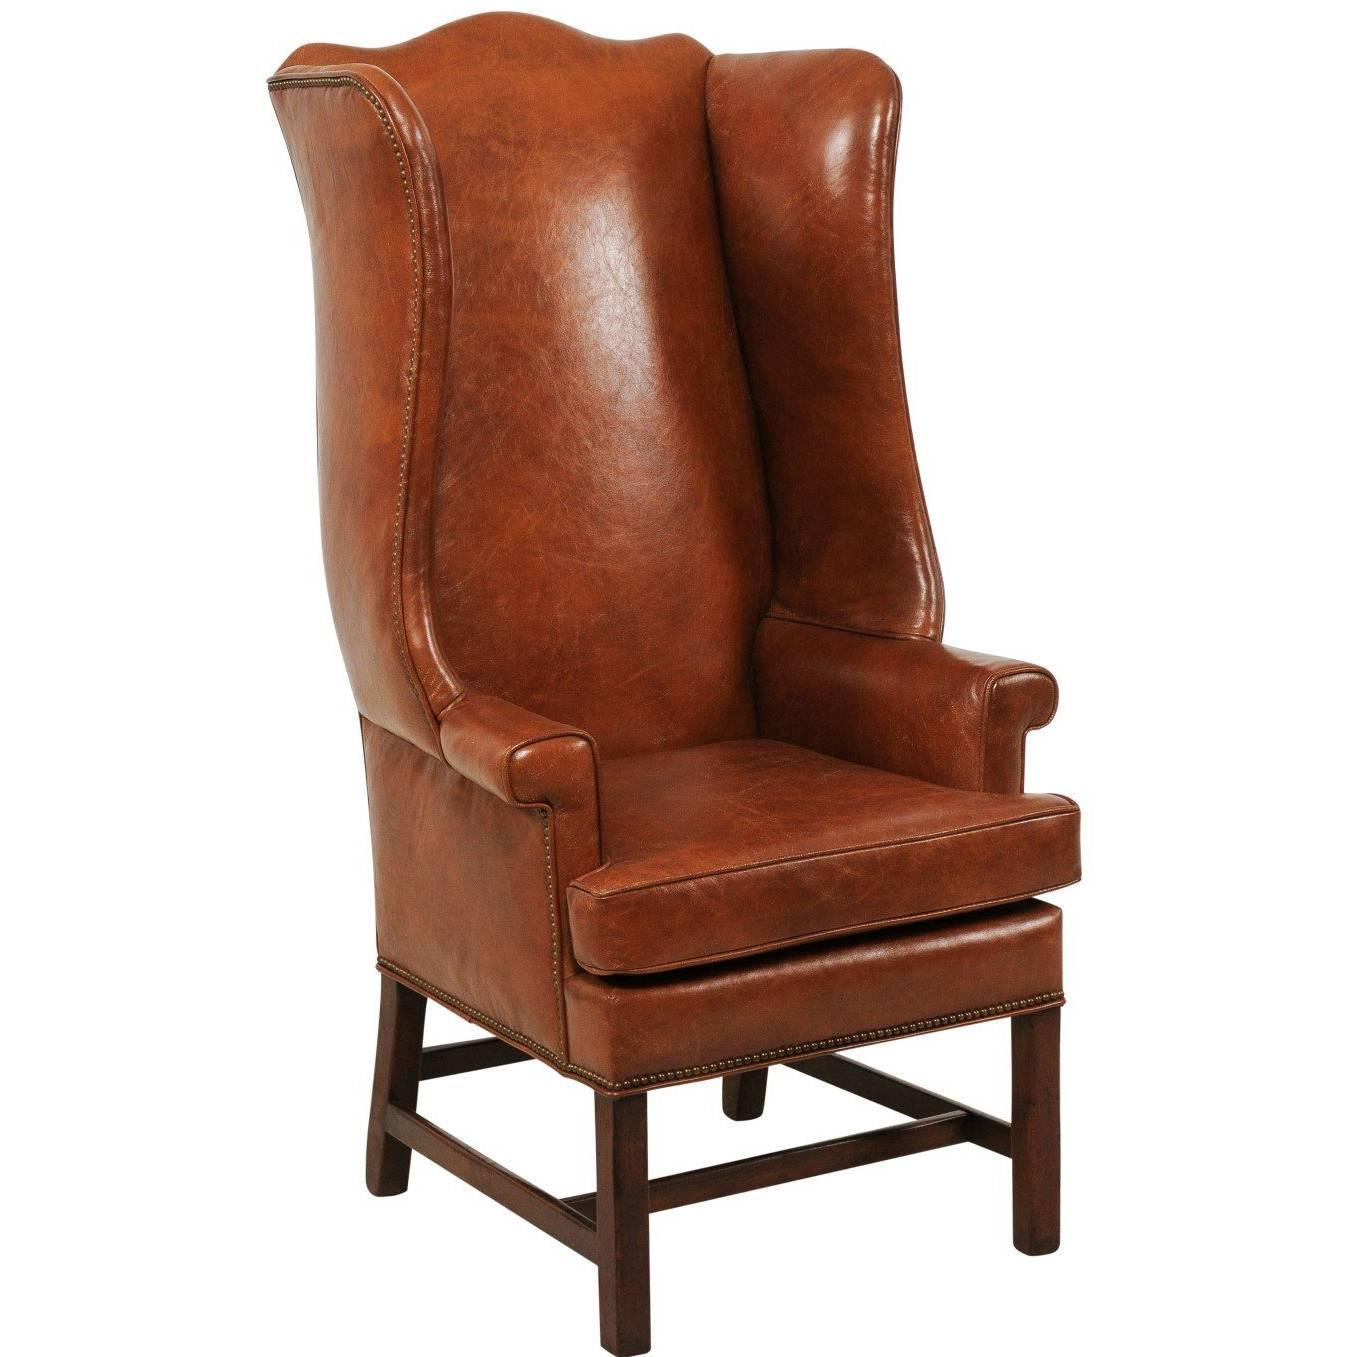 Vintage English Midcentury Brown Leather Wingback Chair With Brass Nailhead  Trim